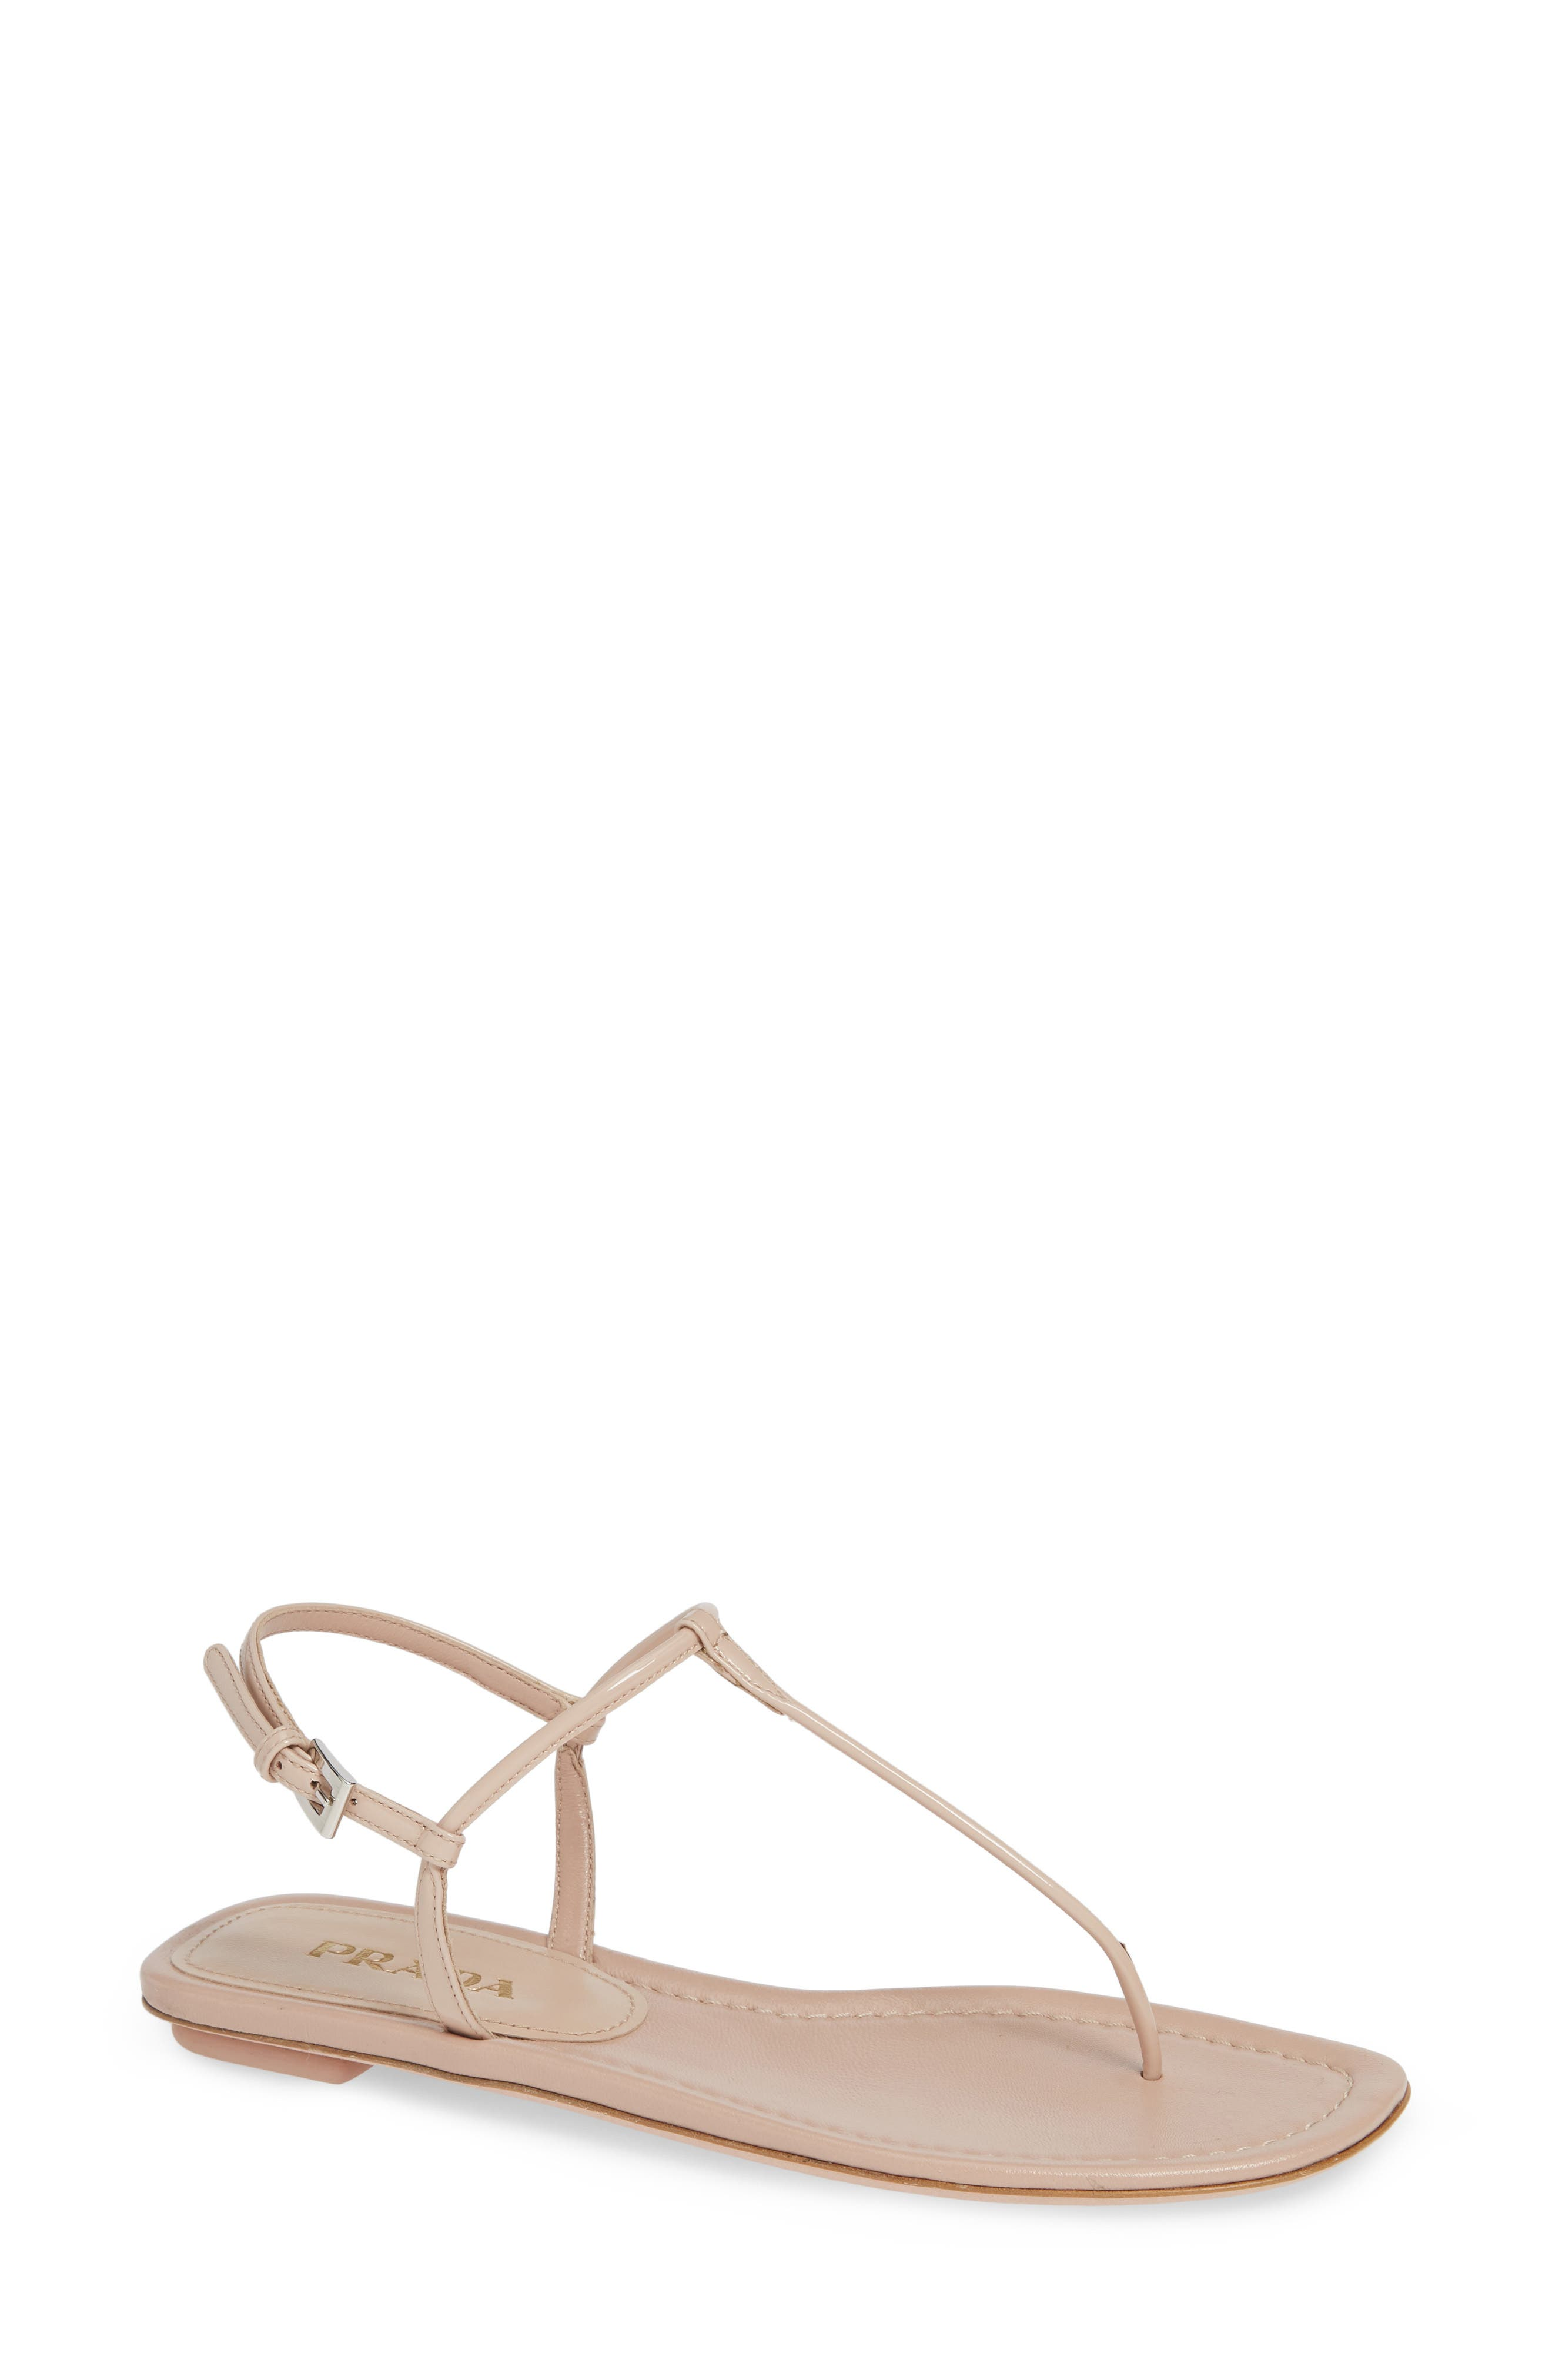 Thong Sandal,                         Main,                         color, CIPRIA